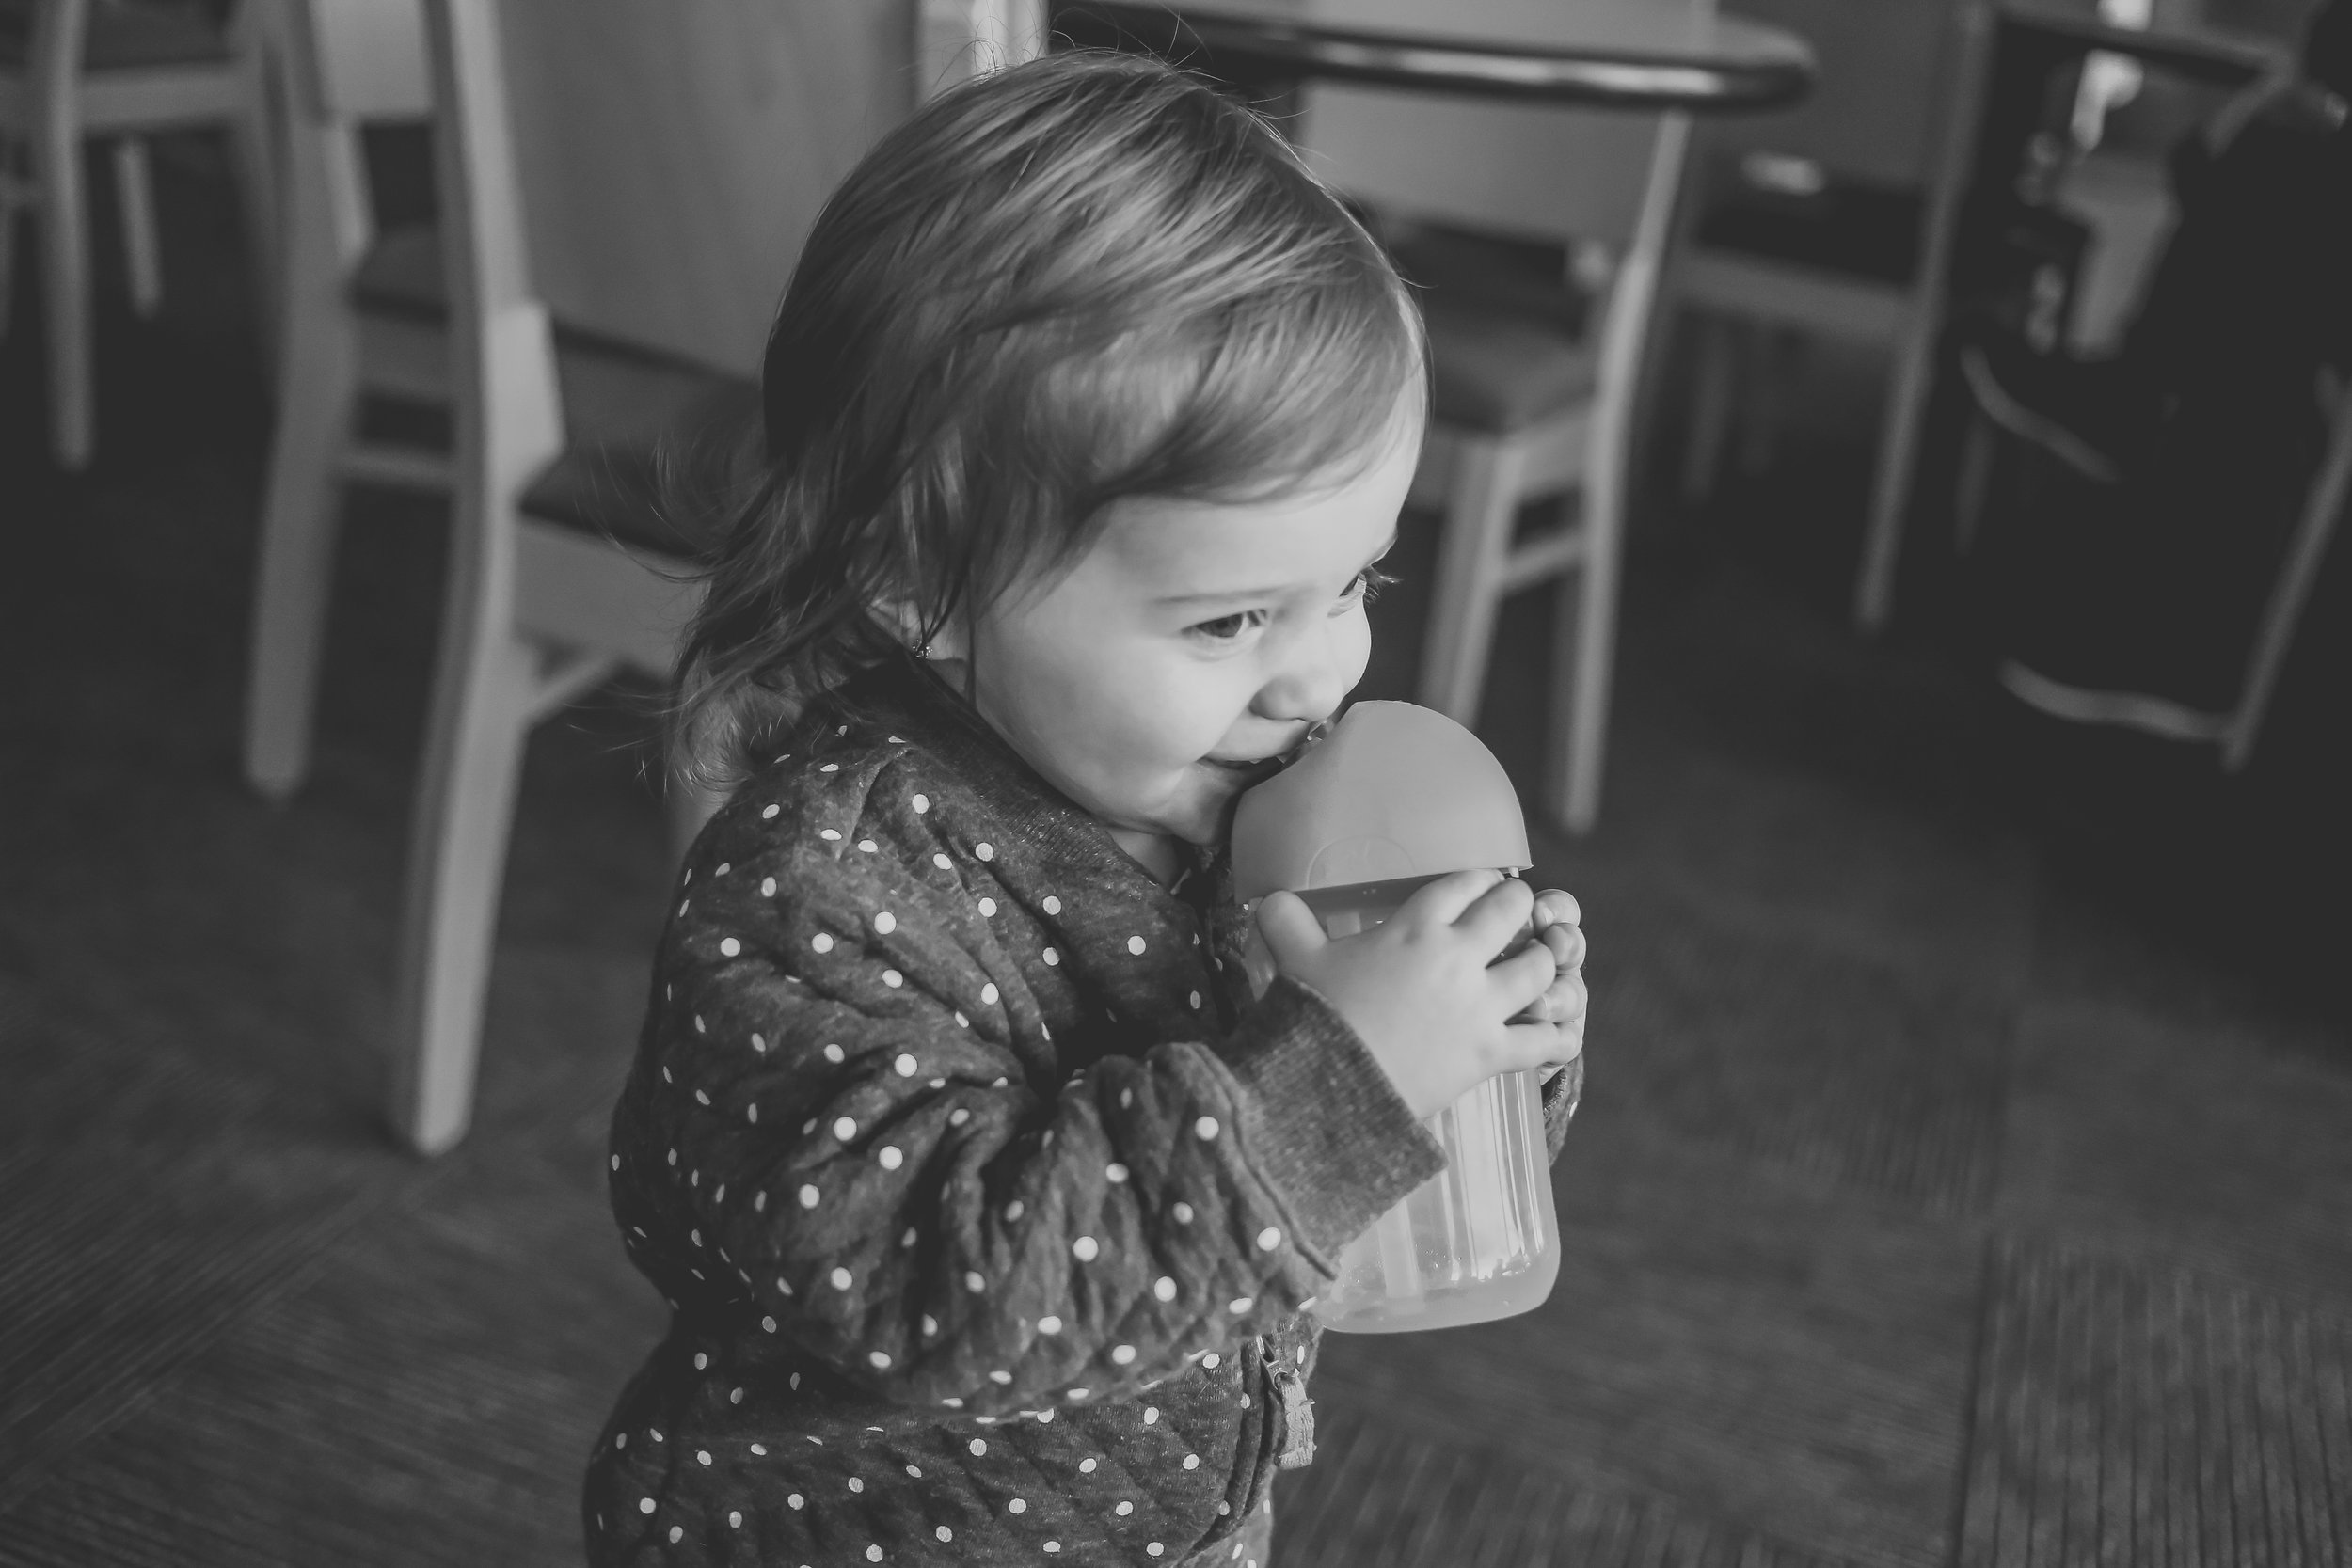 Toddler girl drinking from her cup at Panera Bread in Staten Island, NY. Documentary family photography.